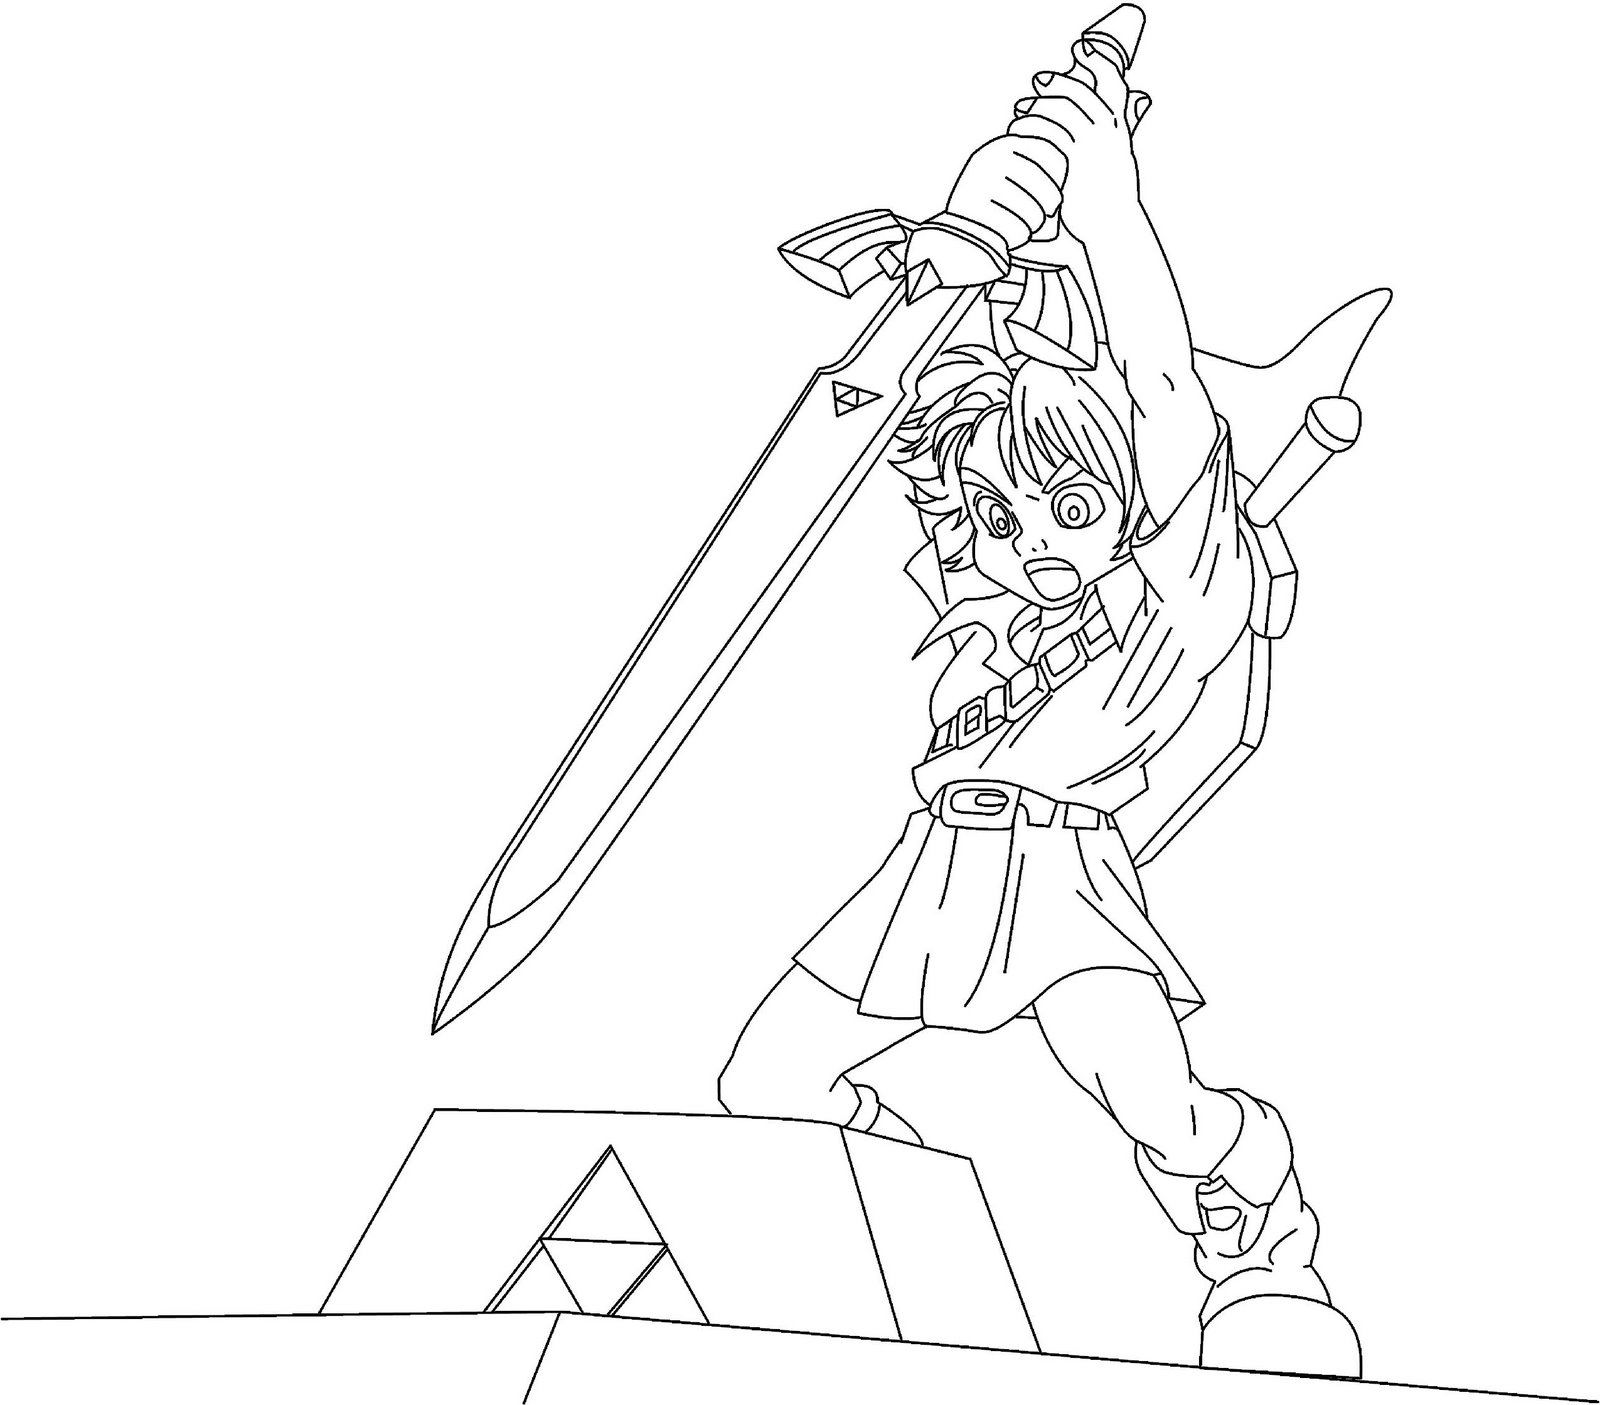 Free Printable Zelda Coloring Pages For Kids Legend Of Coloring Pages